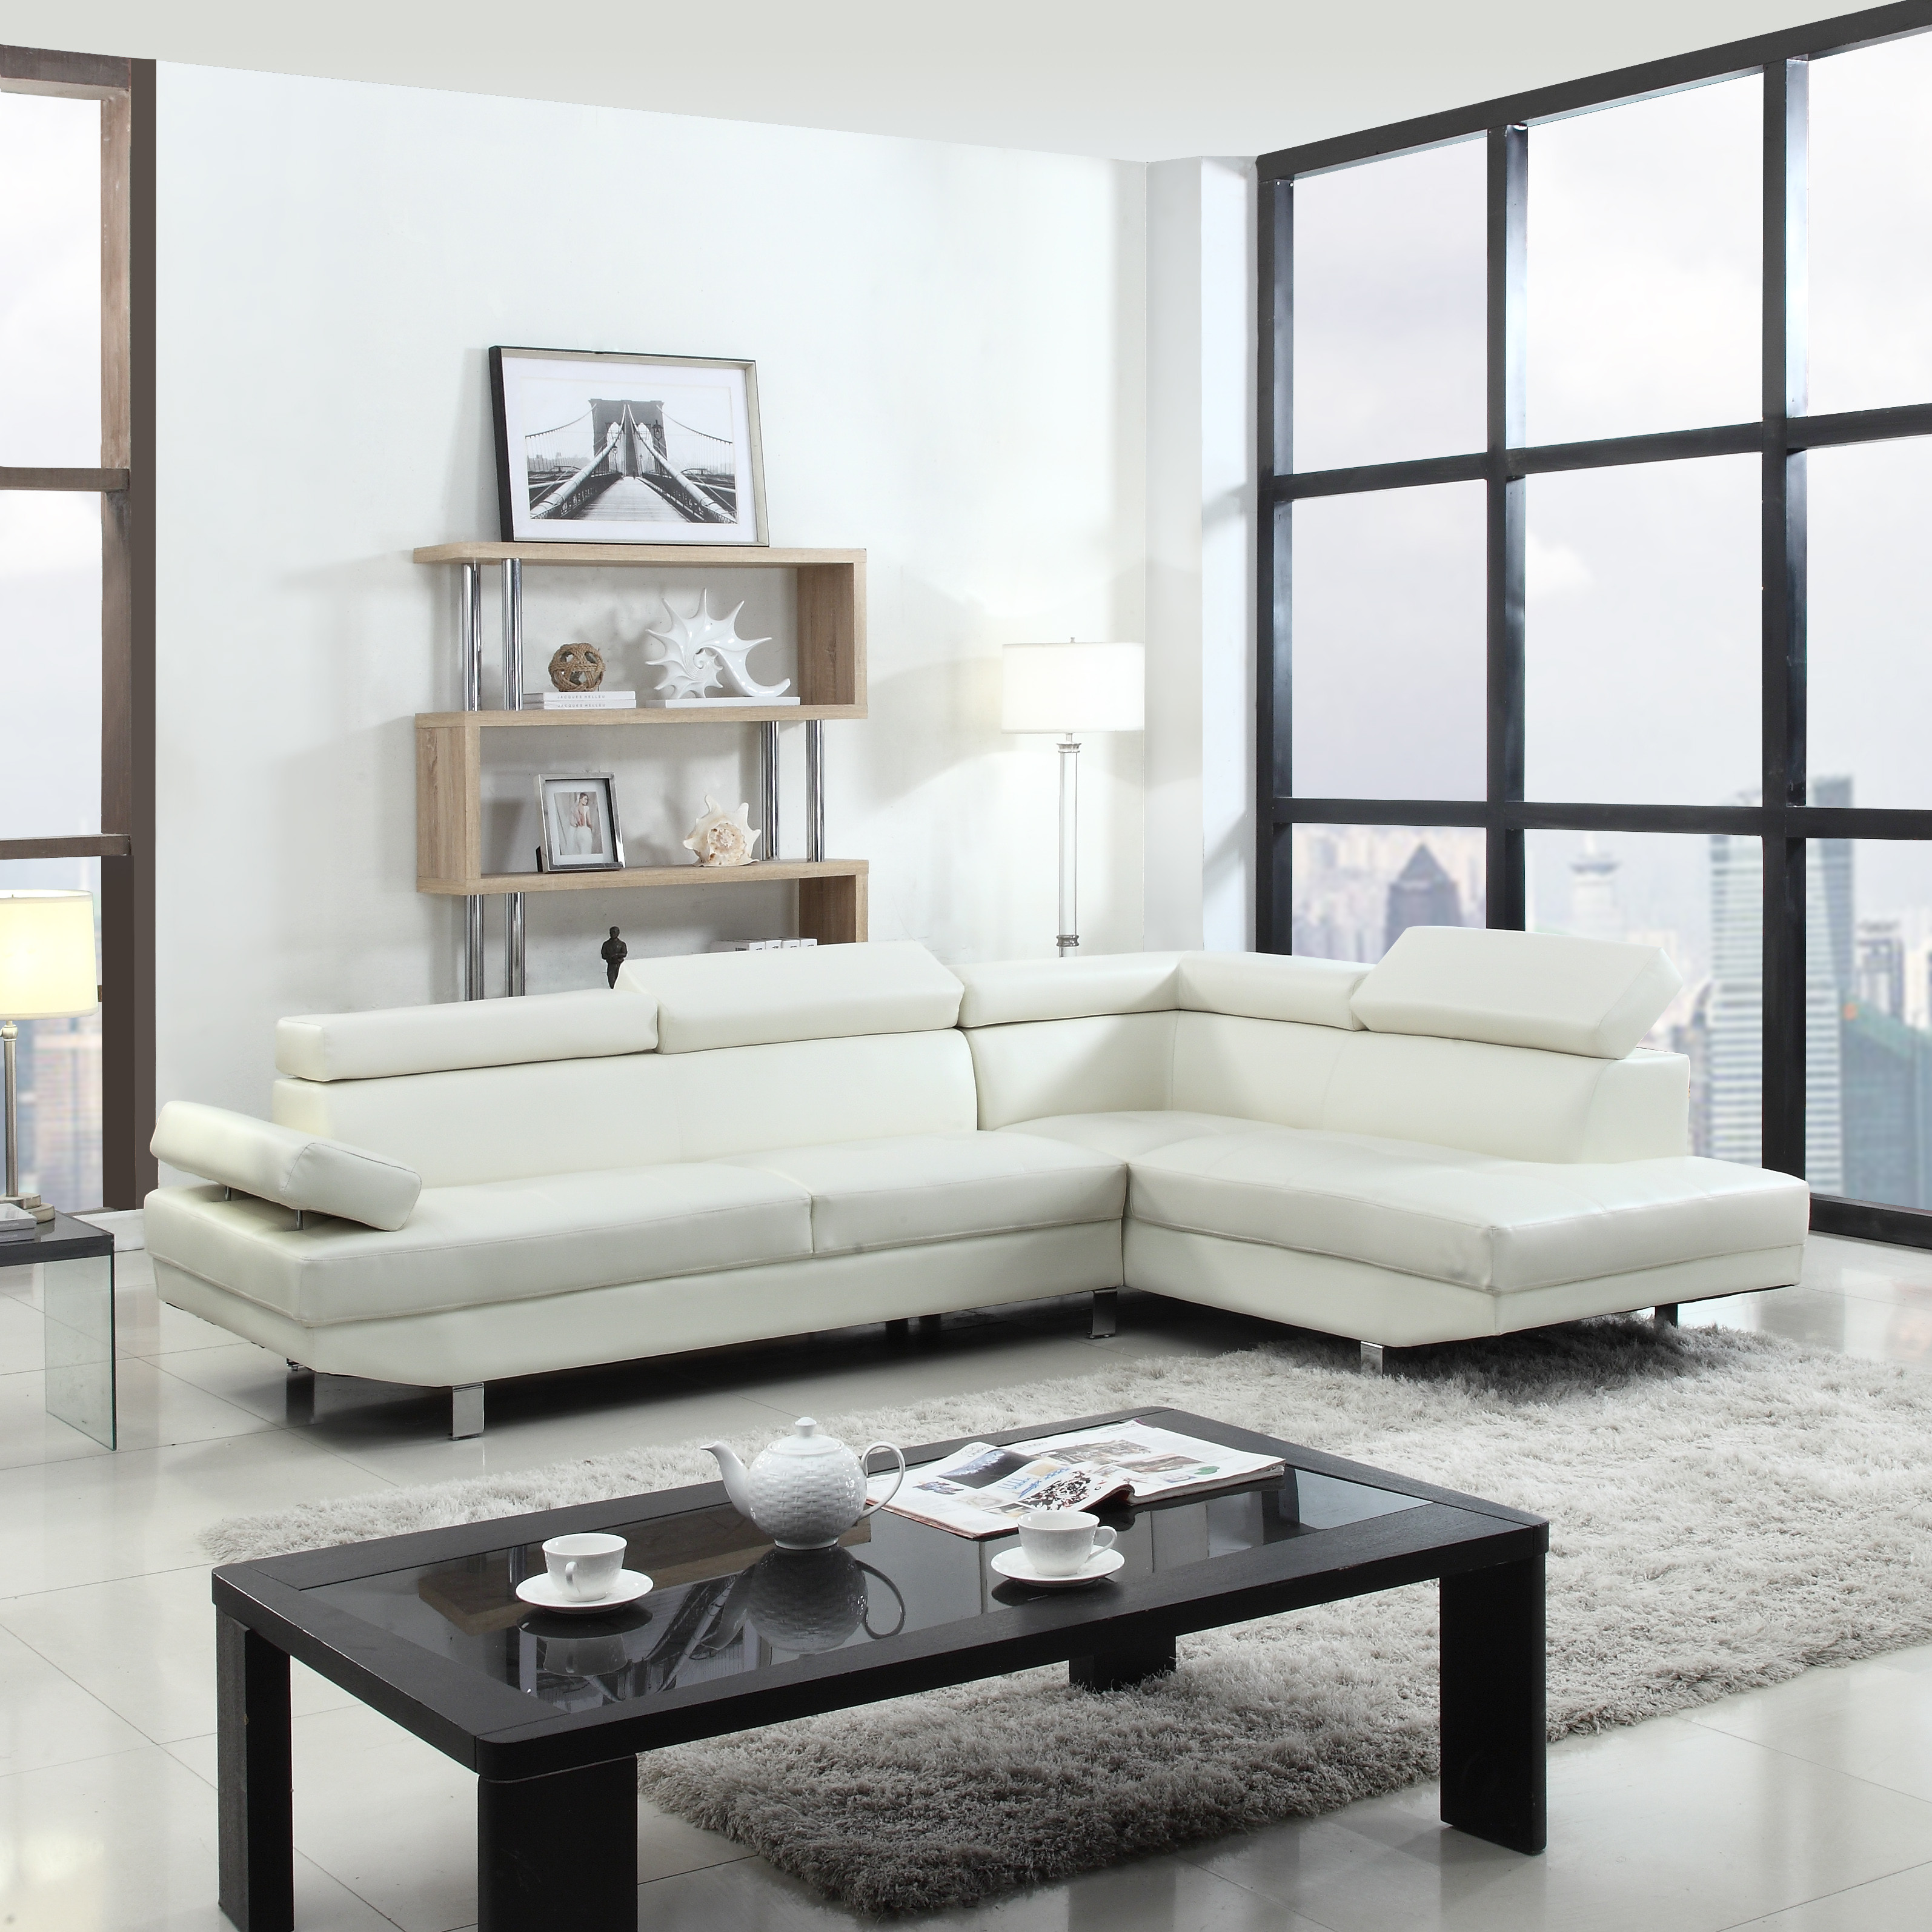 Best ideas about White Sectional Sofa . Save or Pin 2 Piece Contemporary Modern Faux Leather White Sectional Now.